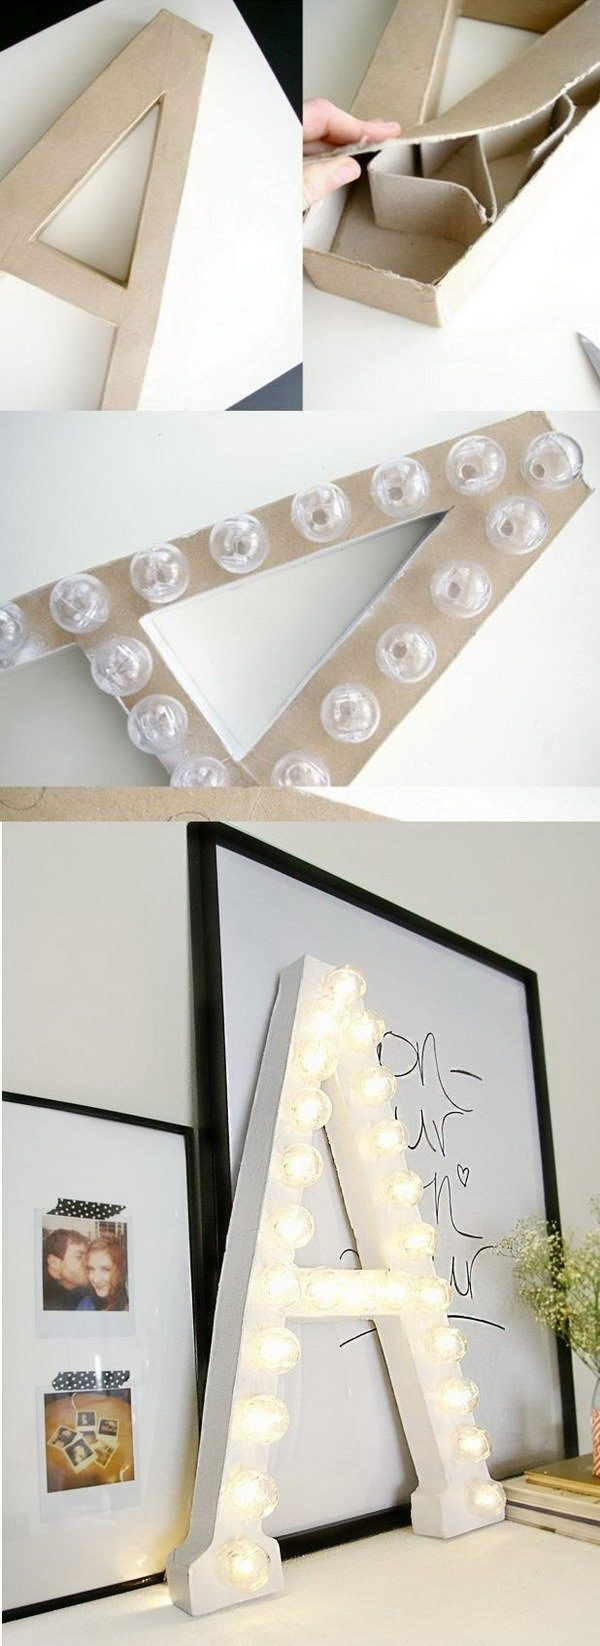 Cool DIY Ideas   Tutorials for Teenage Girls  Bedroom Decoration. Best 25  Room decorations ideas on Pinterest   Room wall decor